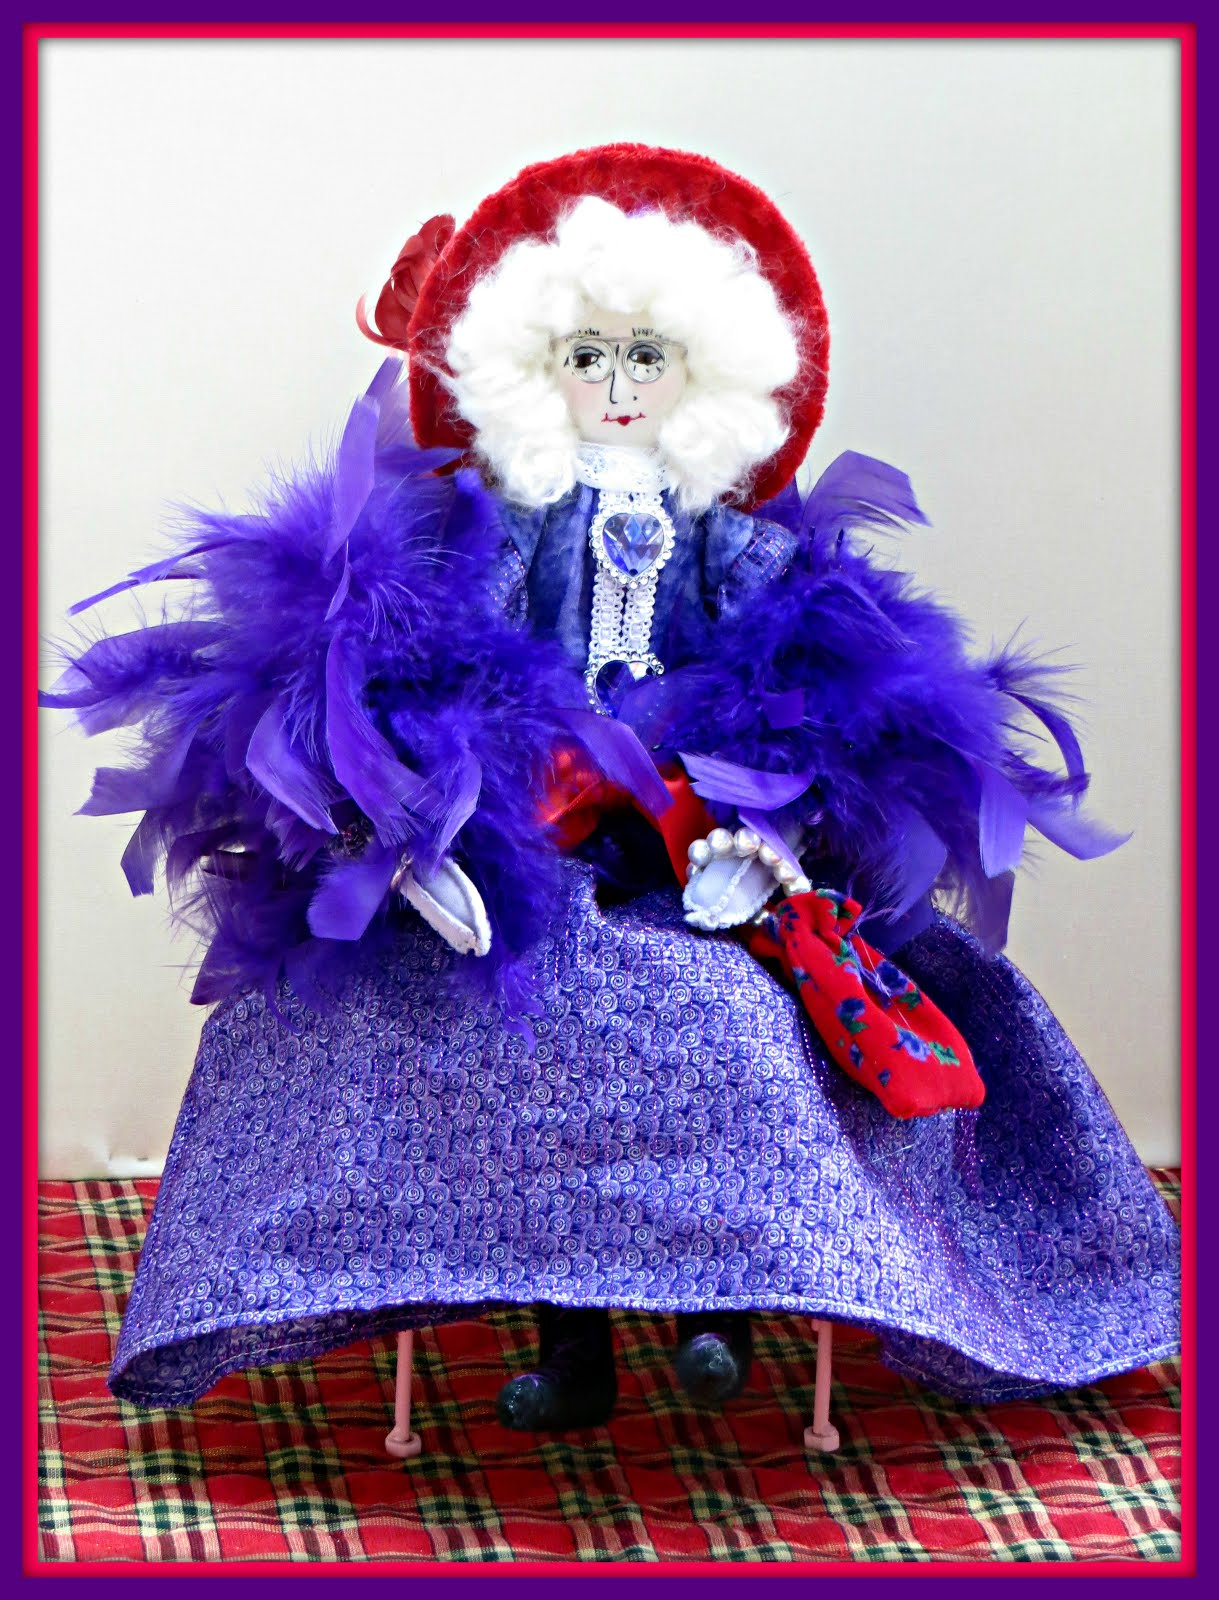 Celia's Doll Product Lines